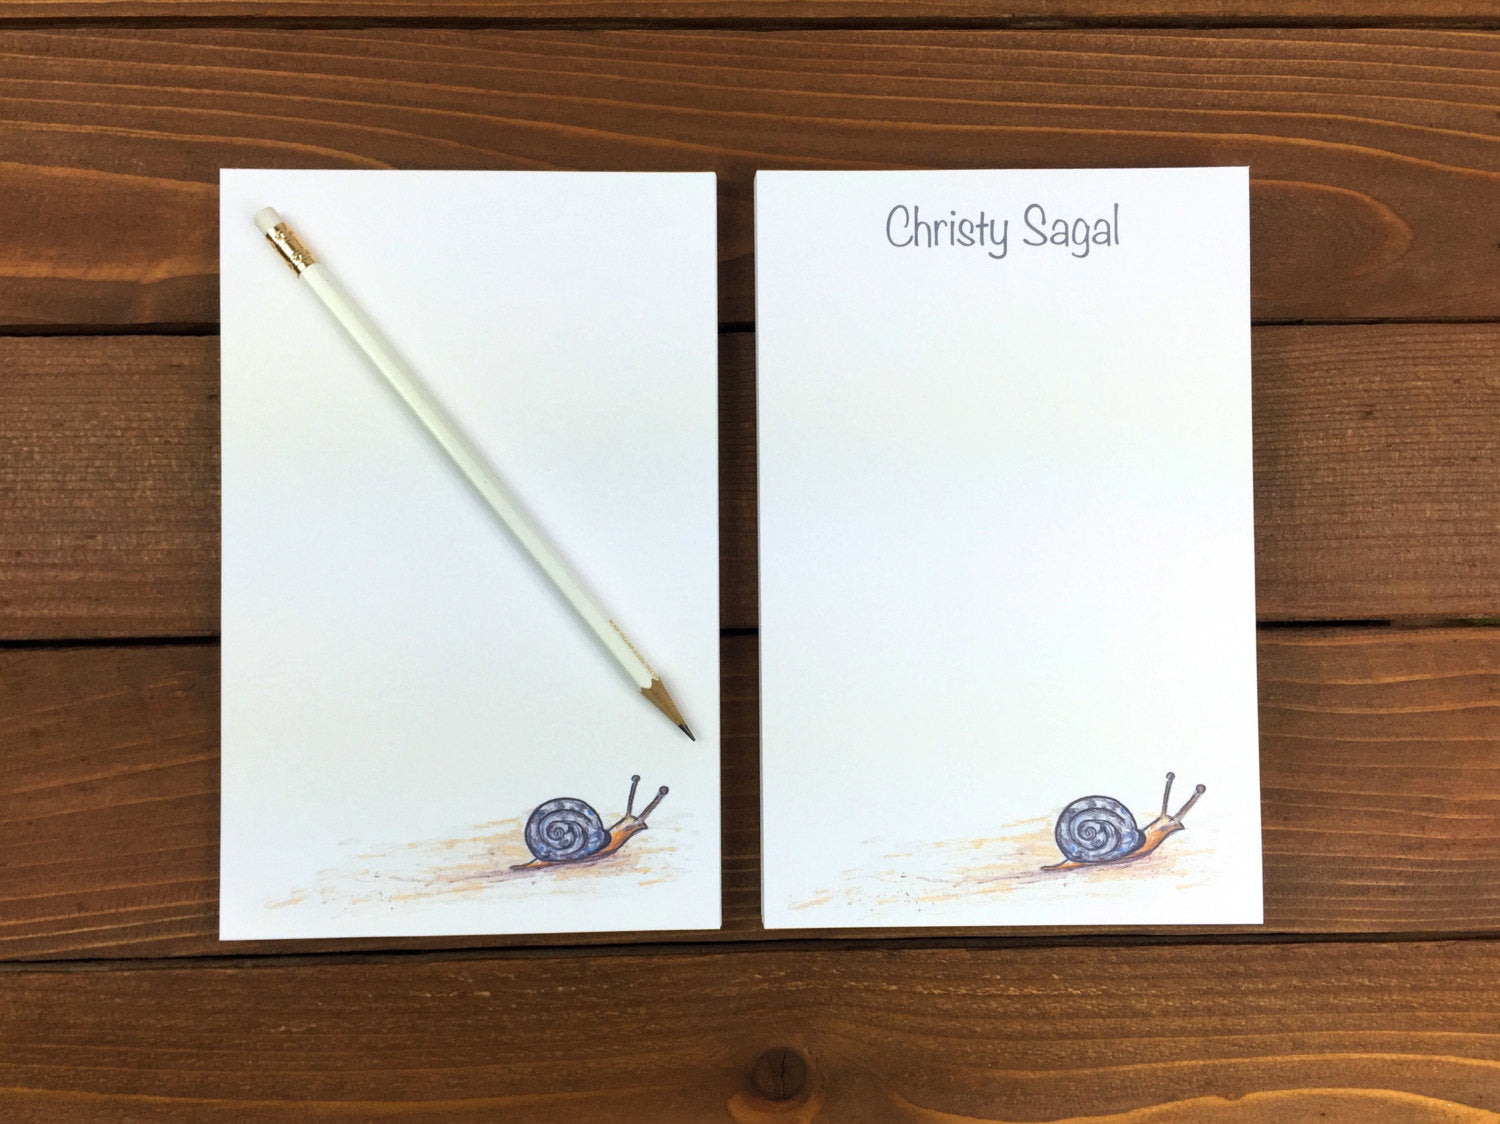 Snail Notepad, Snail Mail, Personalized Notepad, Personalized Note Pads, Magnetic Notepad, Cute Notepads, Note Paper, Desk Pad - 5.5 x 8.5